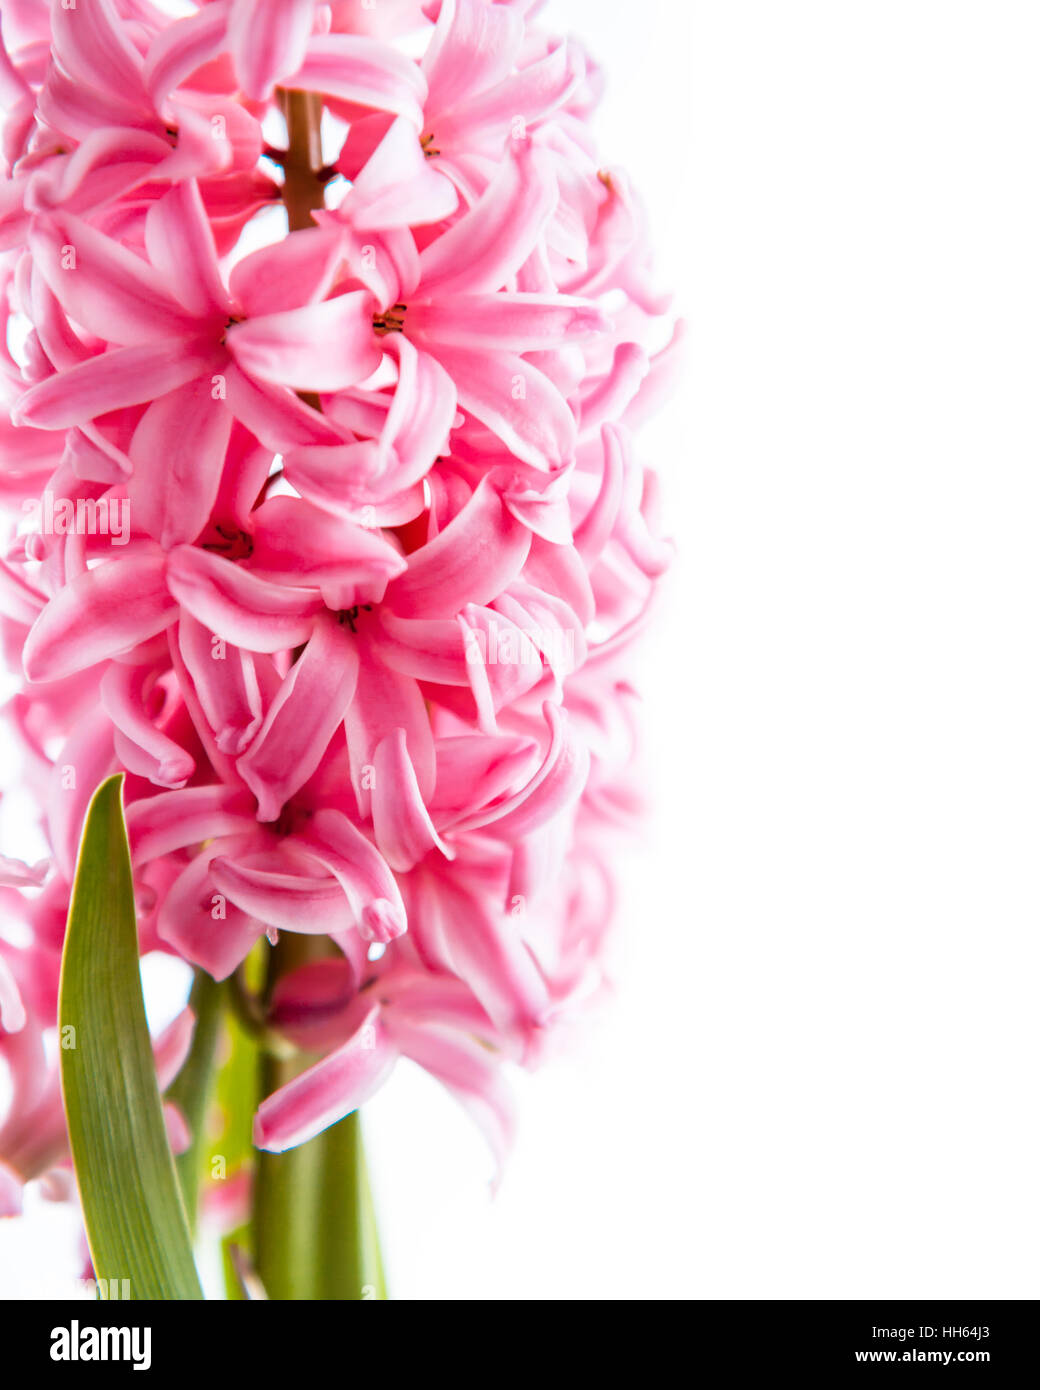 Spring pink hyacinth flower on white background Stock Photo